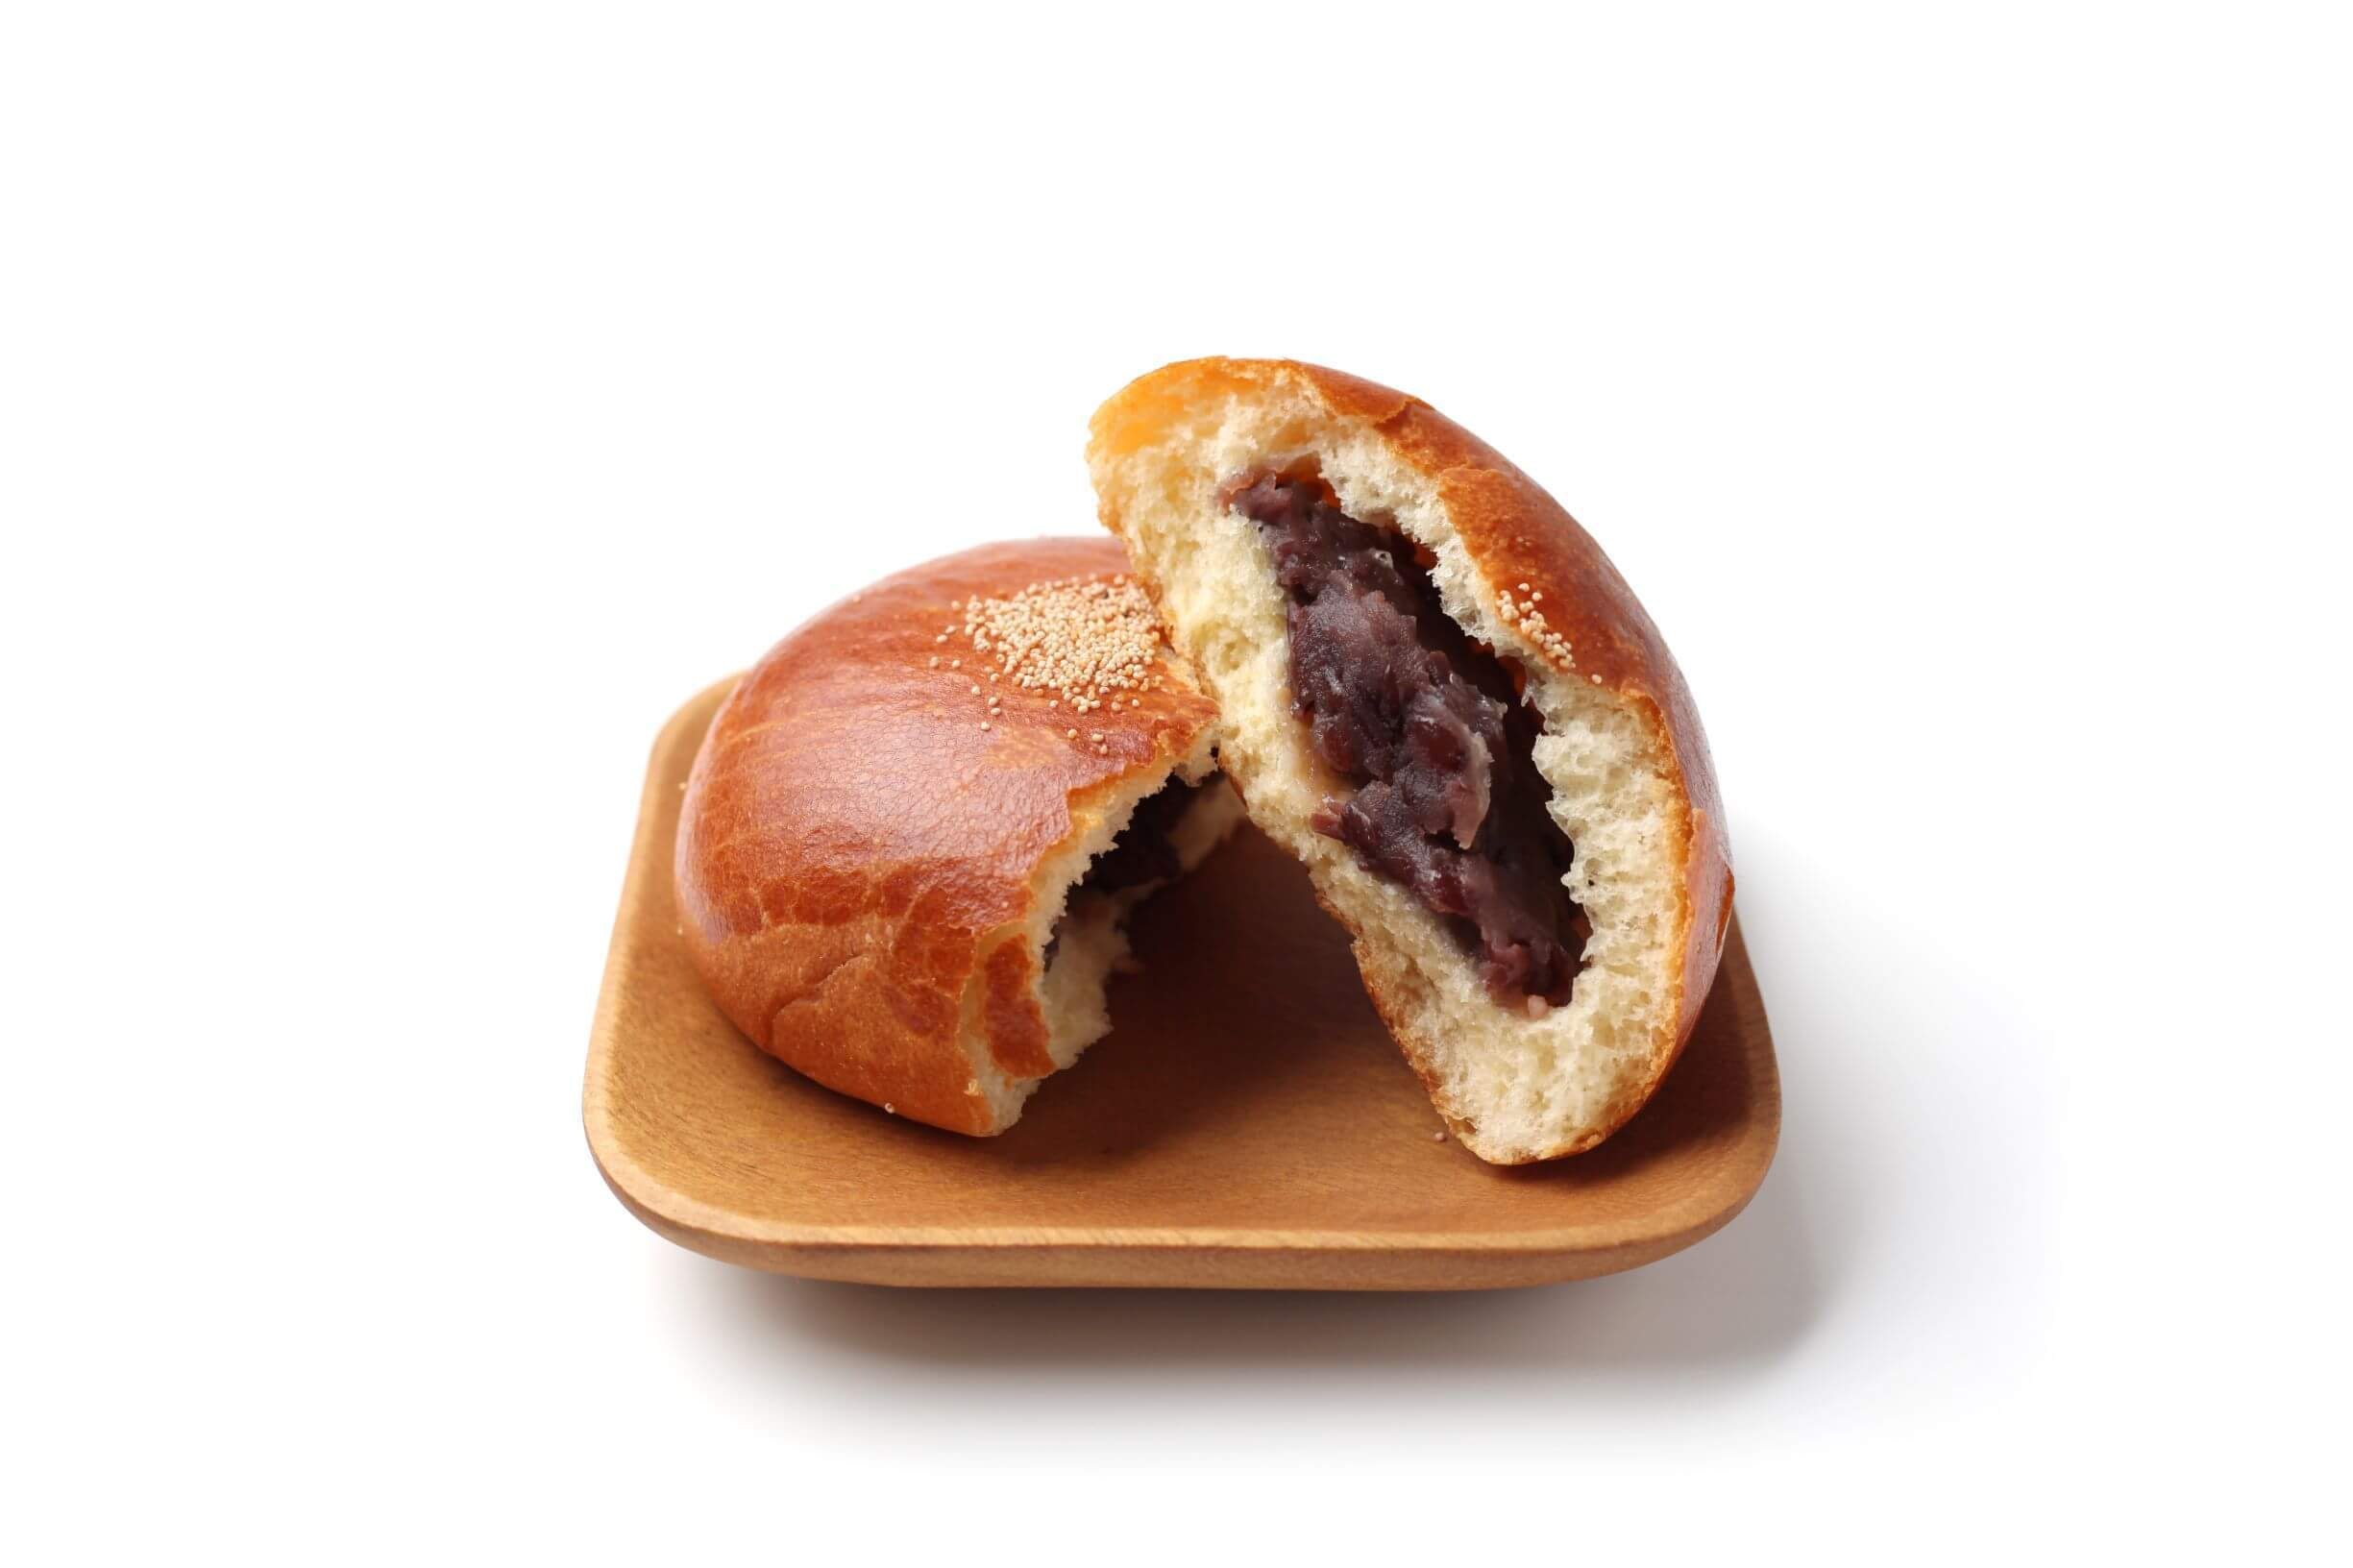 a bun filled with red bean paste